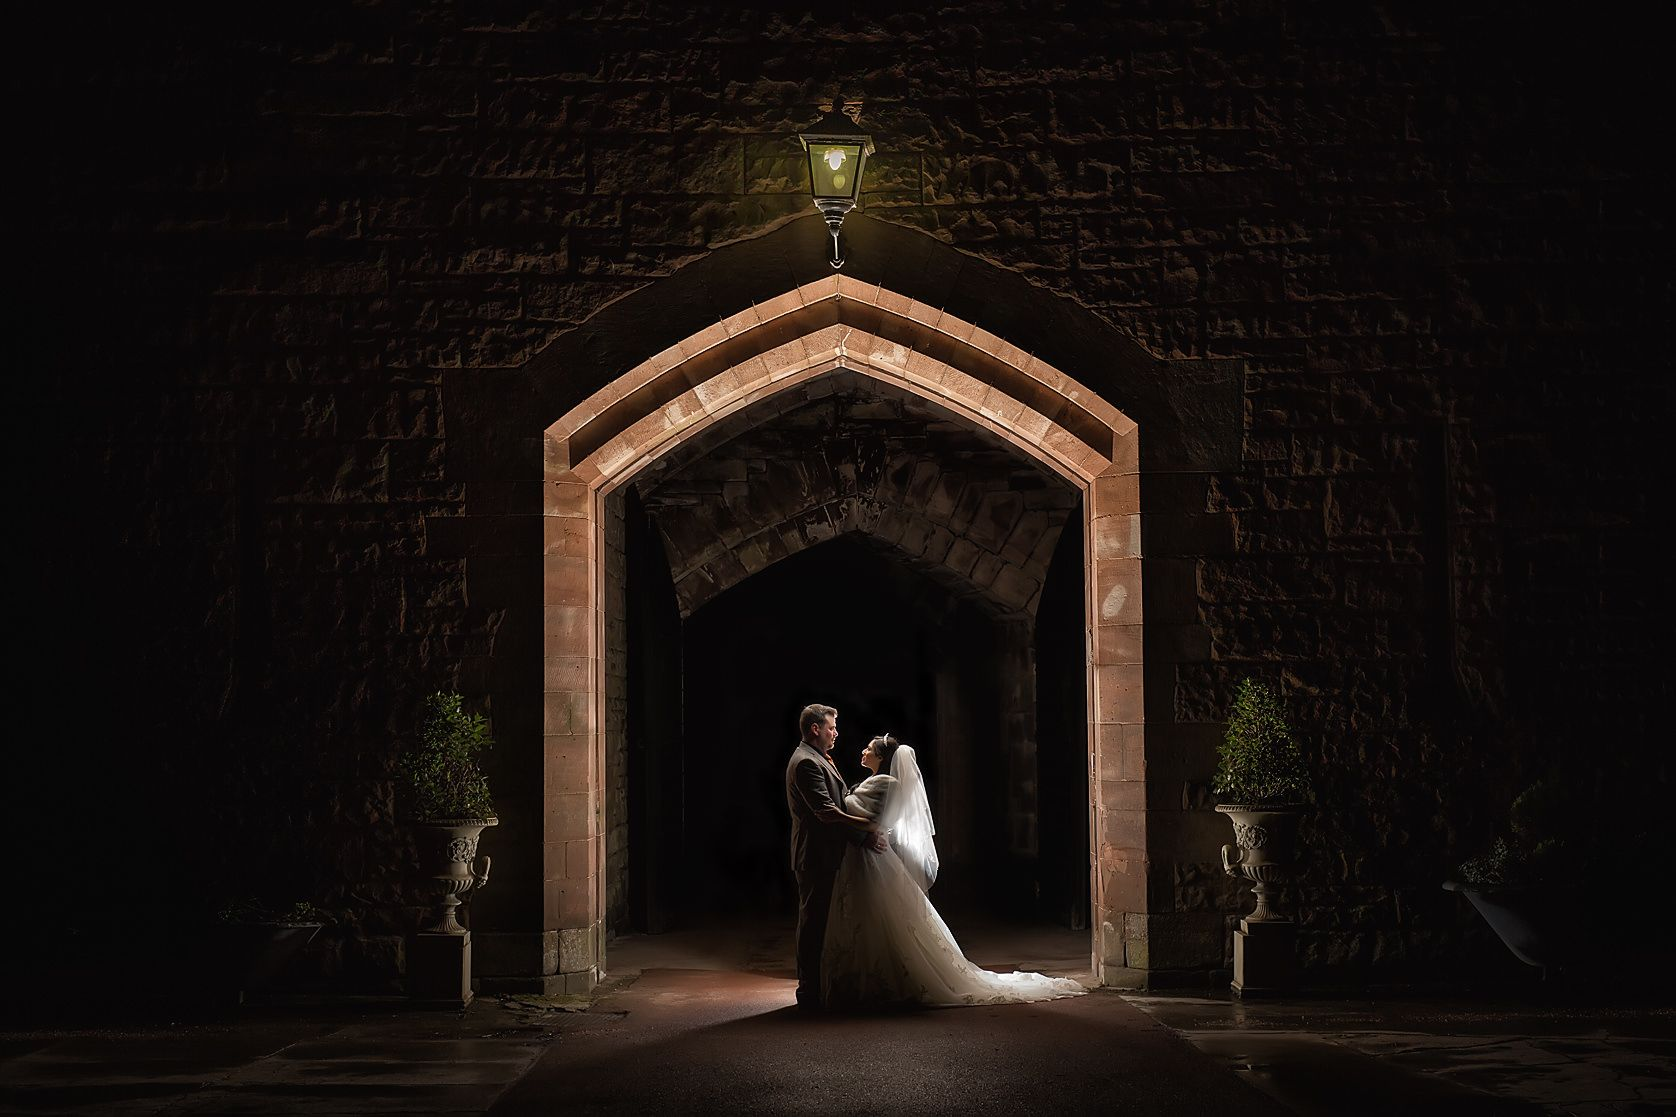 Newly married couple embrace beneath the arched gate way of Peckforton Castle at night